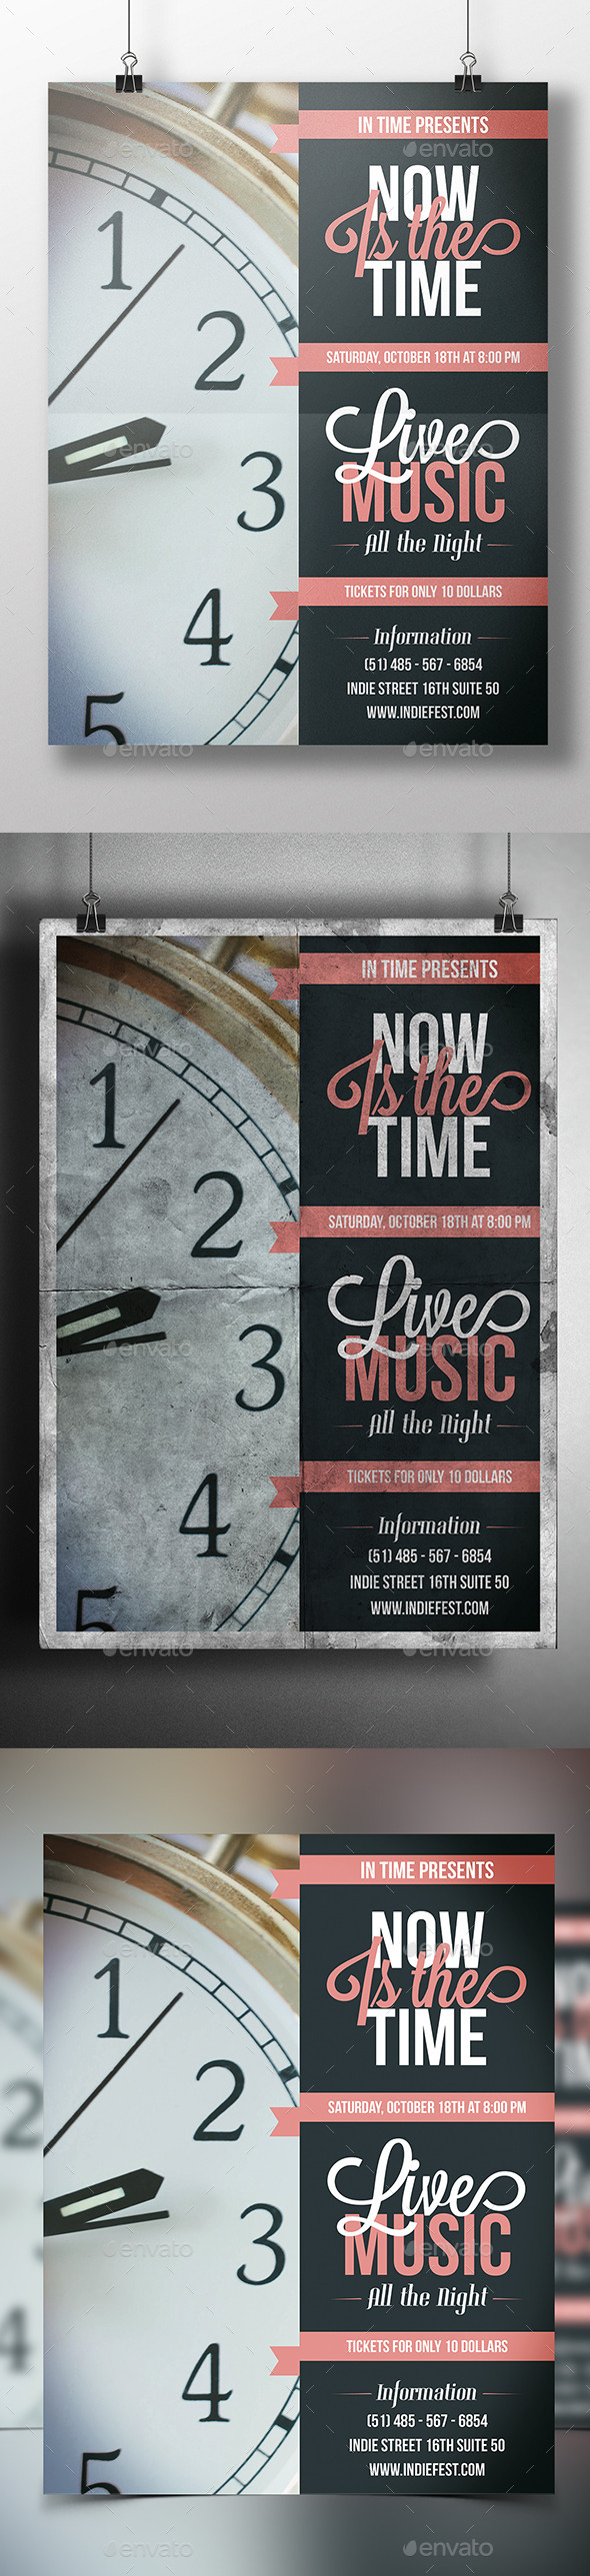 In Time Flyer Template - Miscellaneous Events